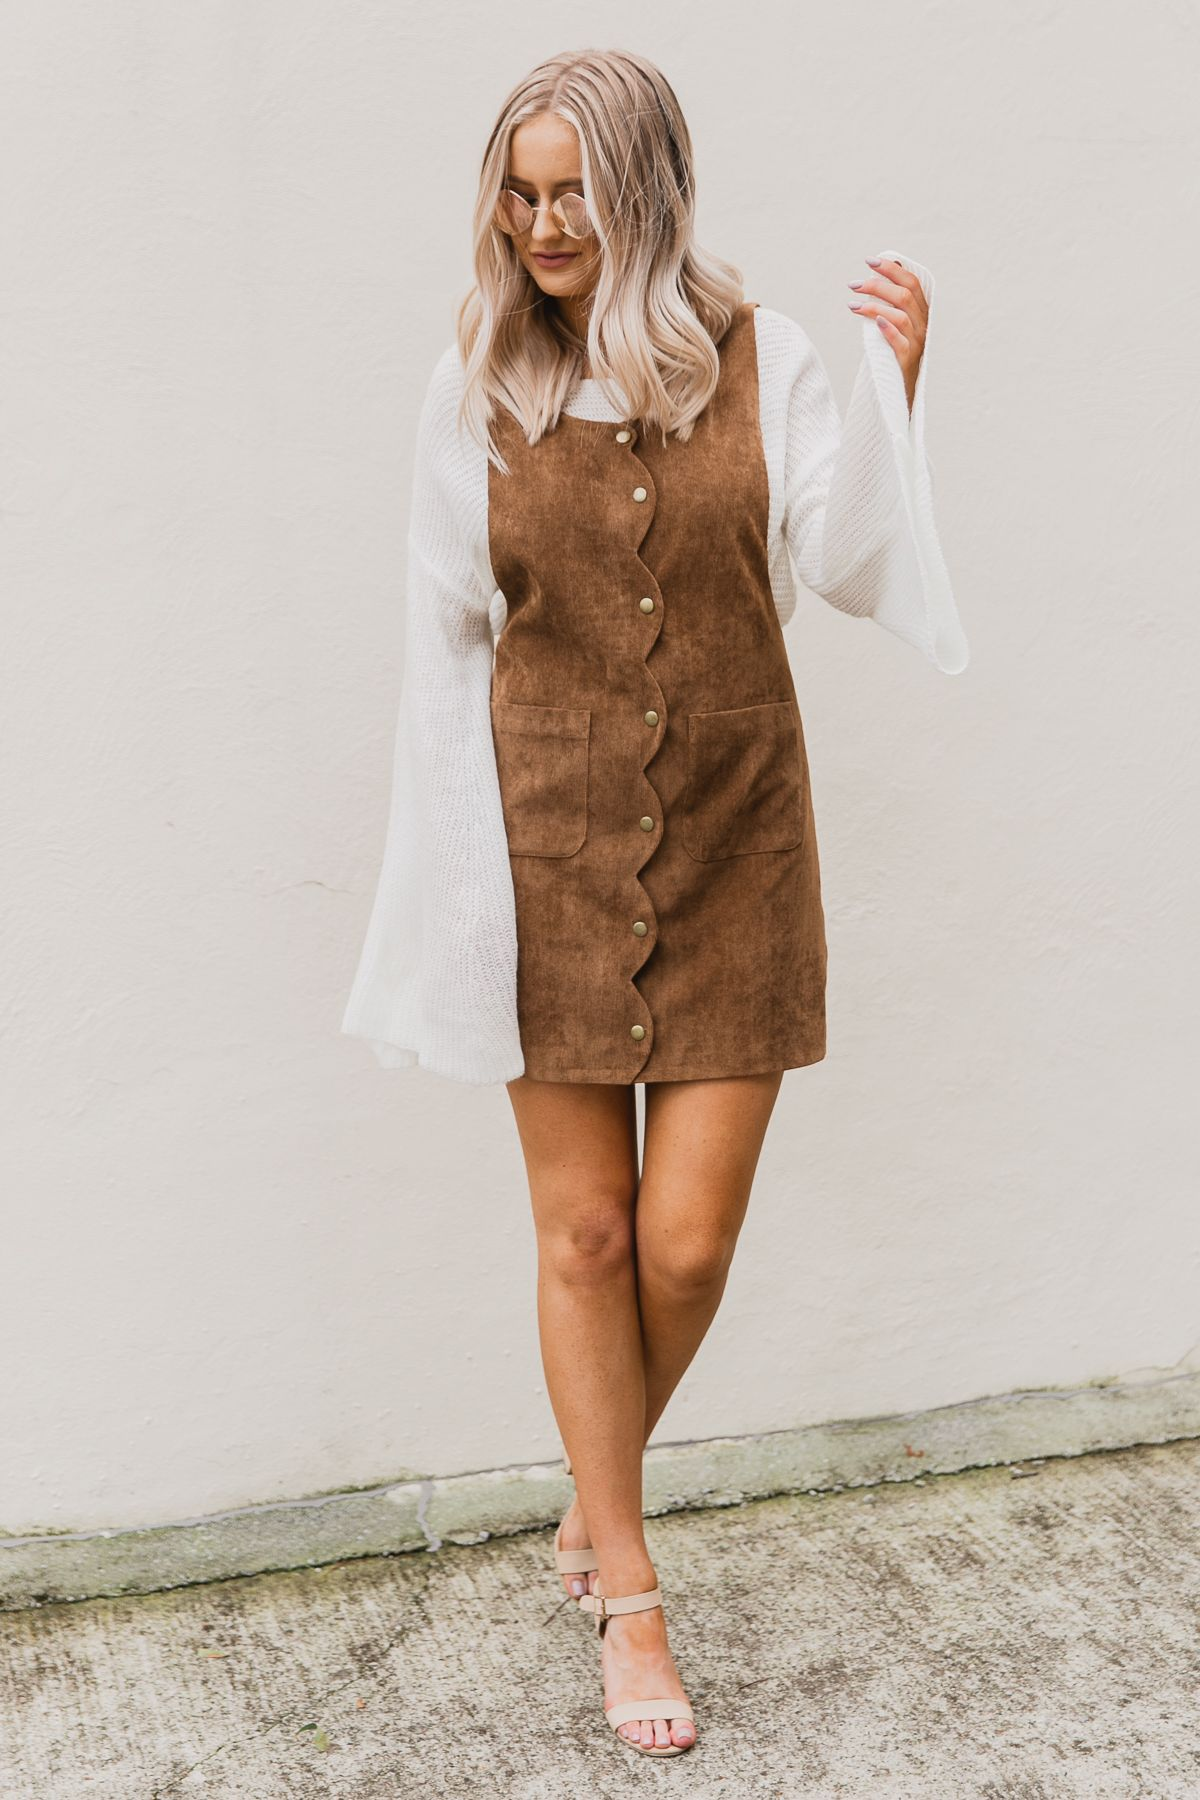 739b2ce6279099 Pair a bell sleeve sweater with this corduroy dress for a trendy fall  outfit. #fashion #style #outfits